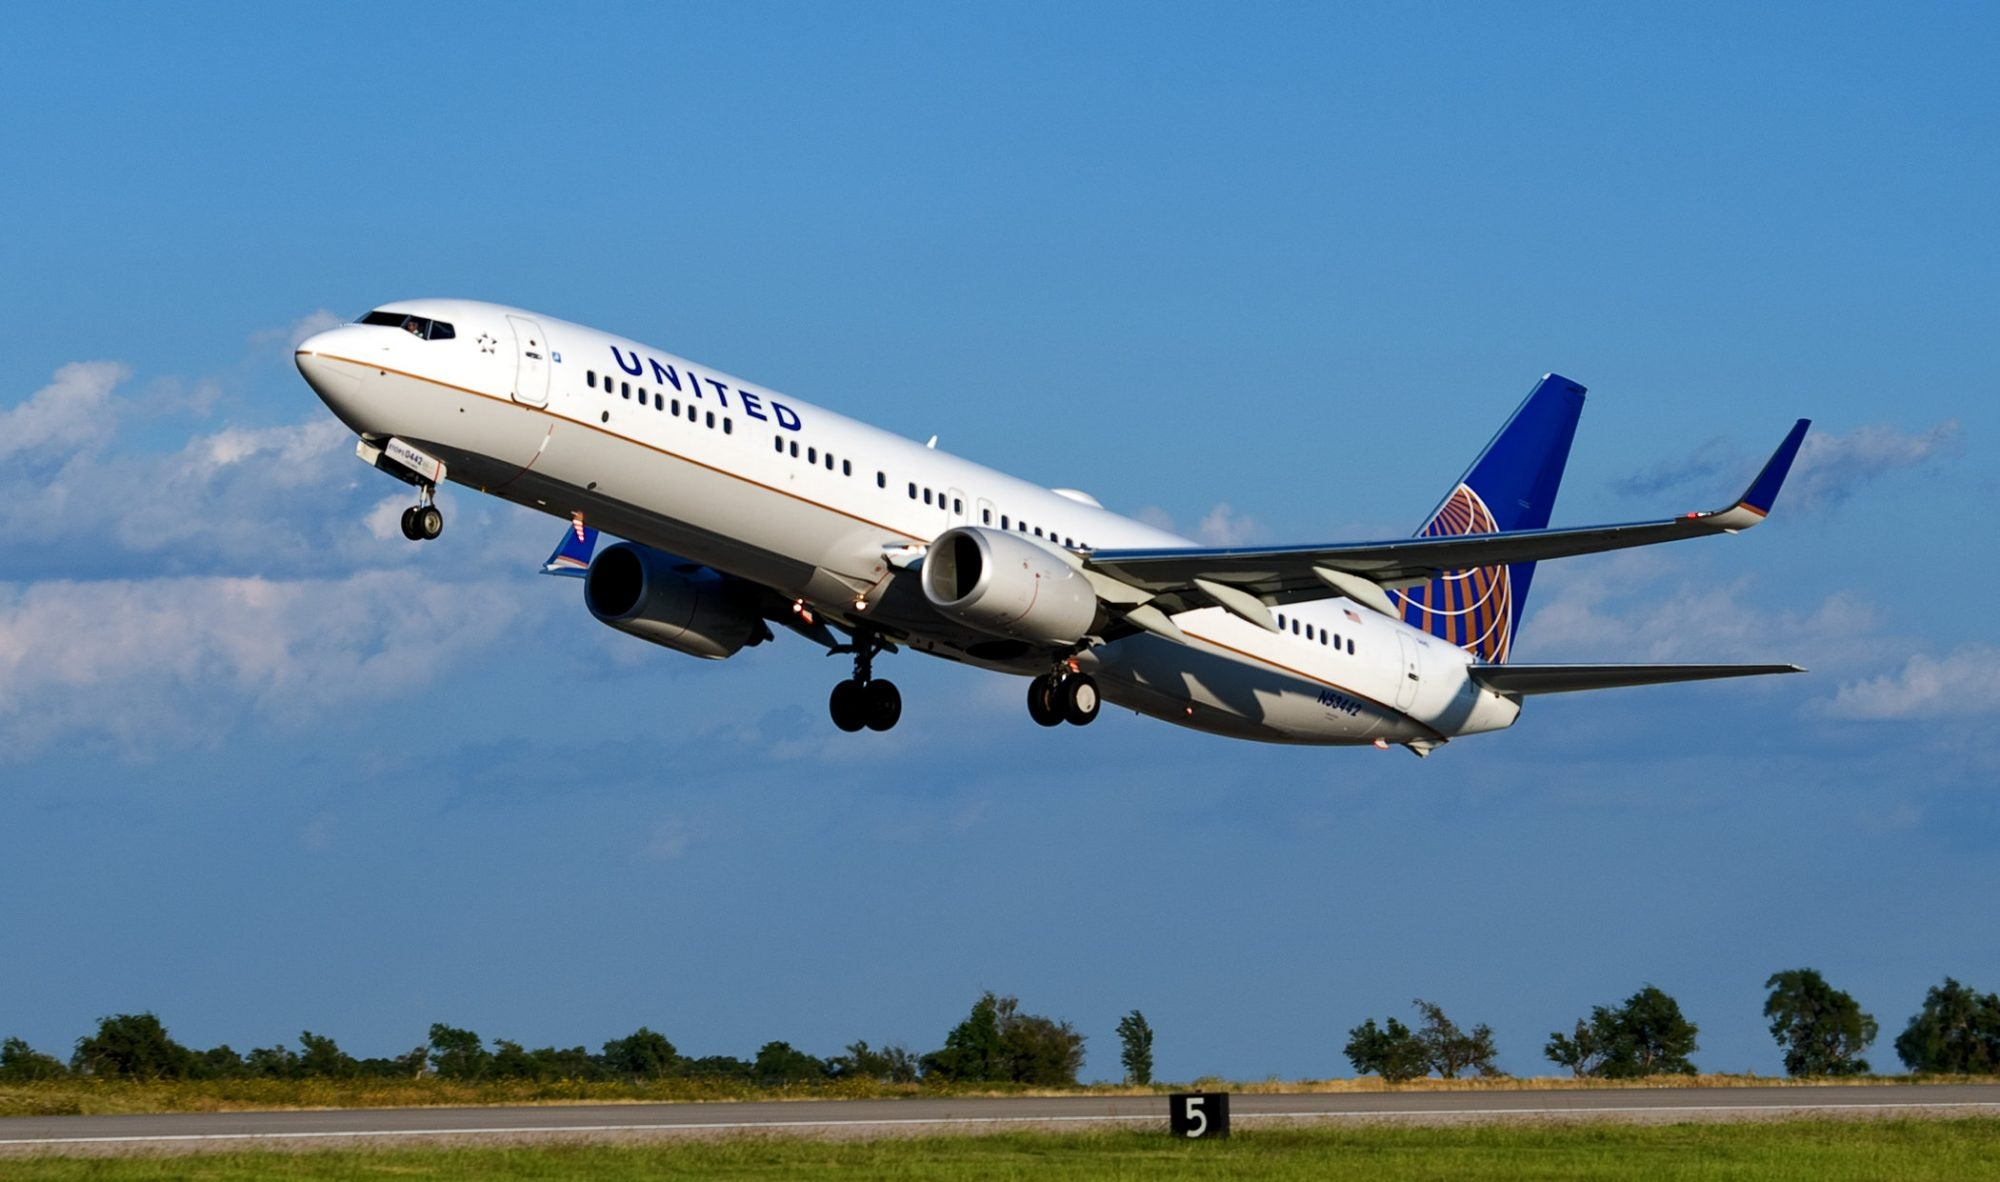 United Airlines status review – New changes impact earning elite status